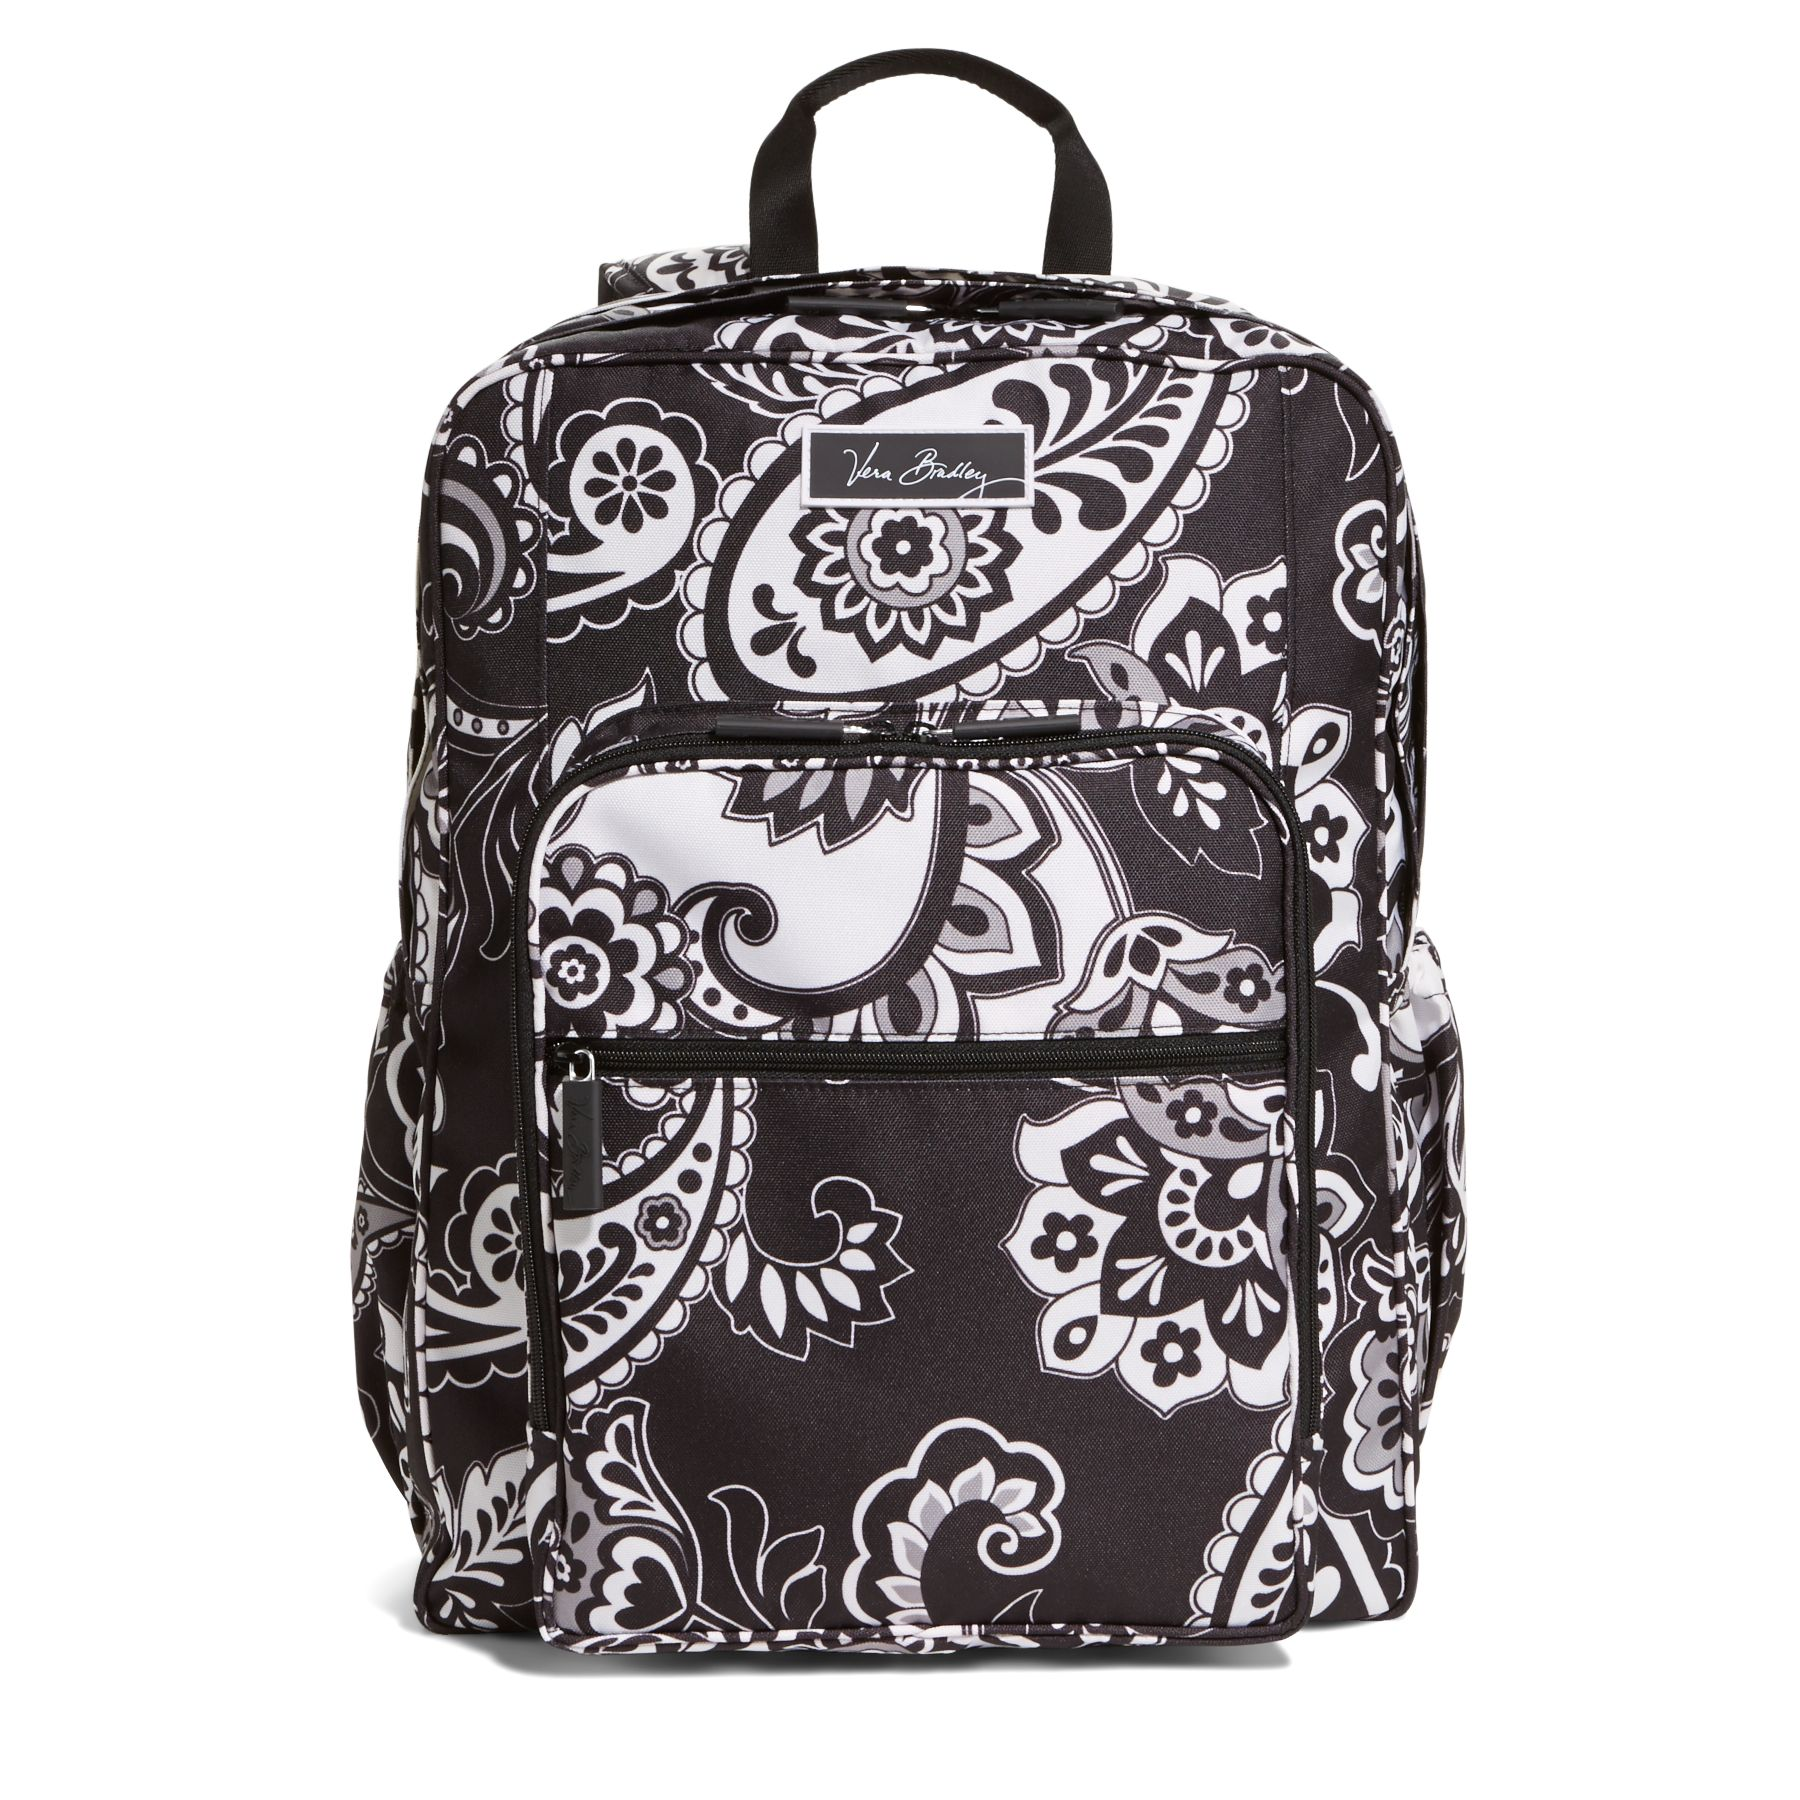 Vera Bradley Lighten Up Large Backpack in Midnight Paisley